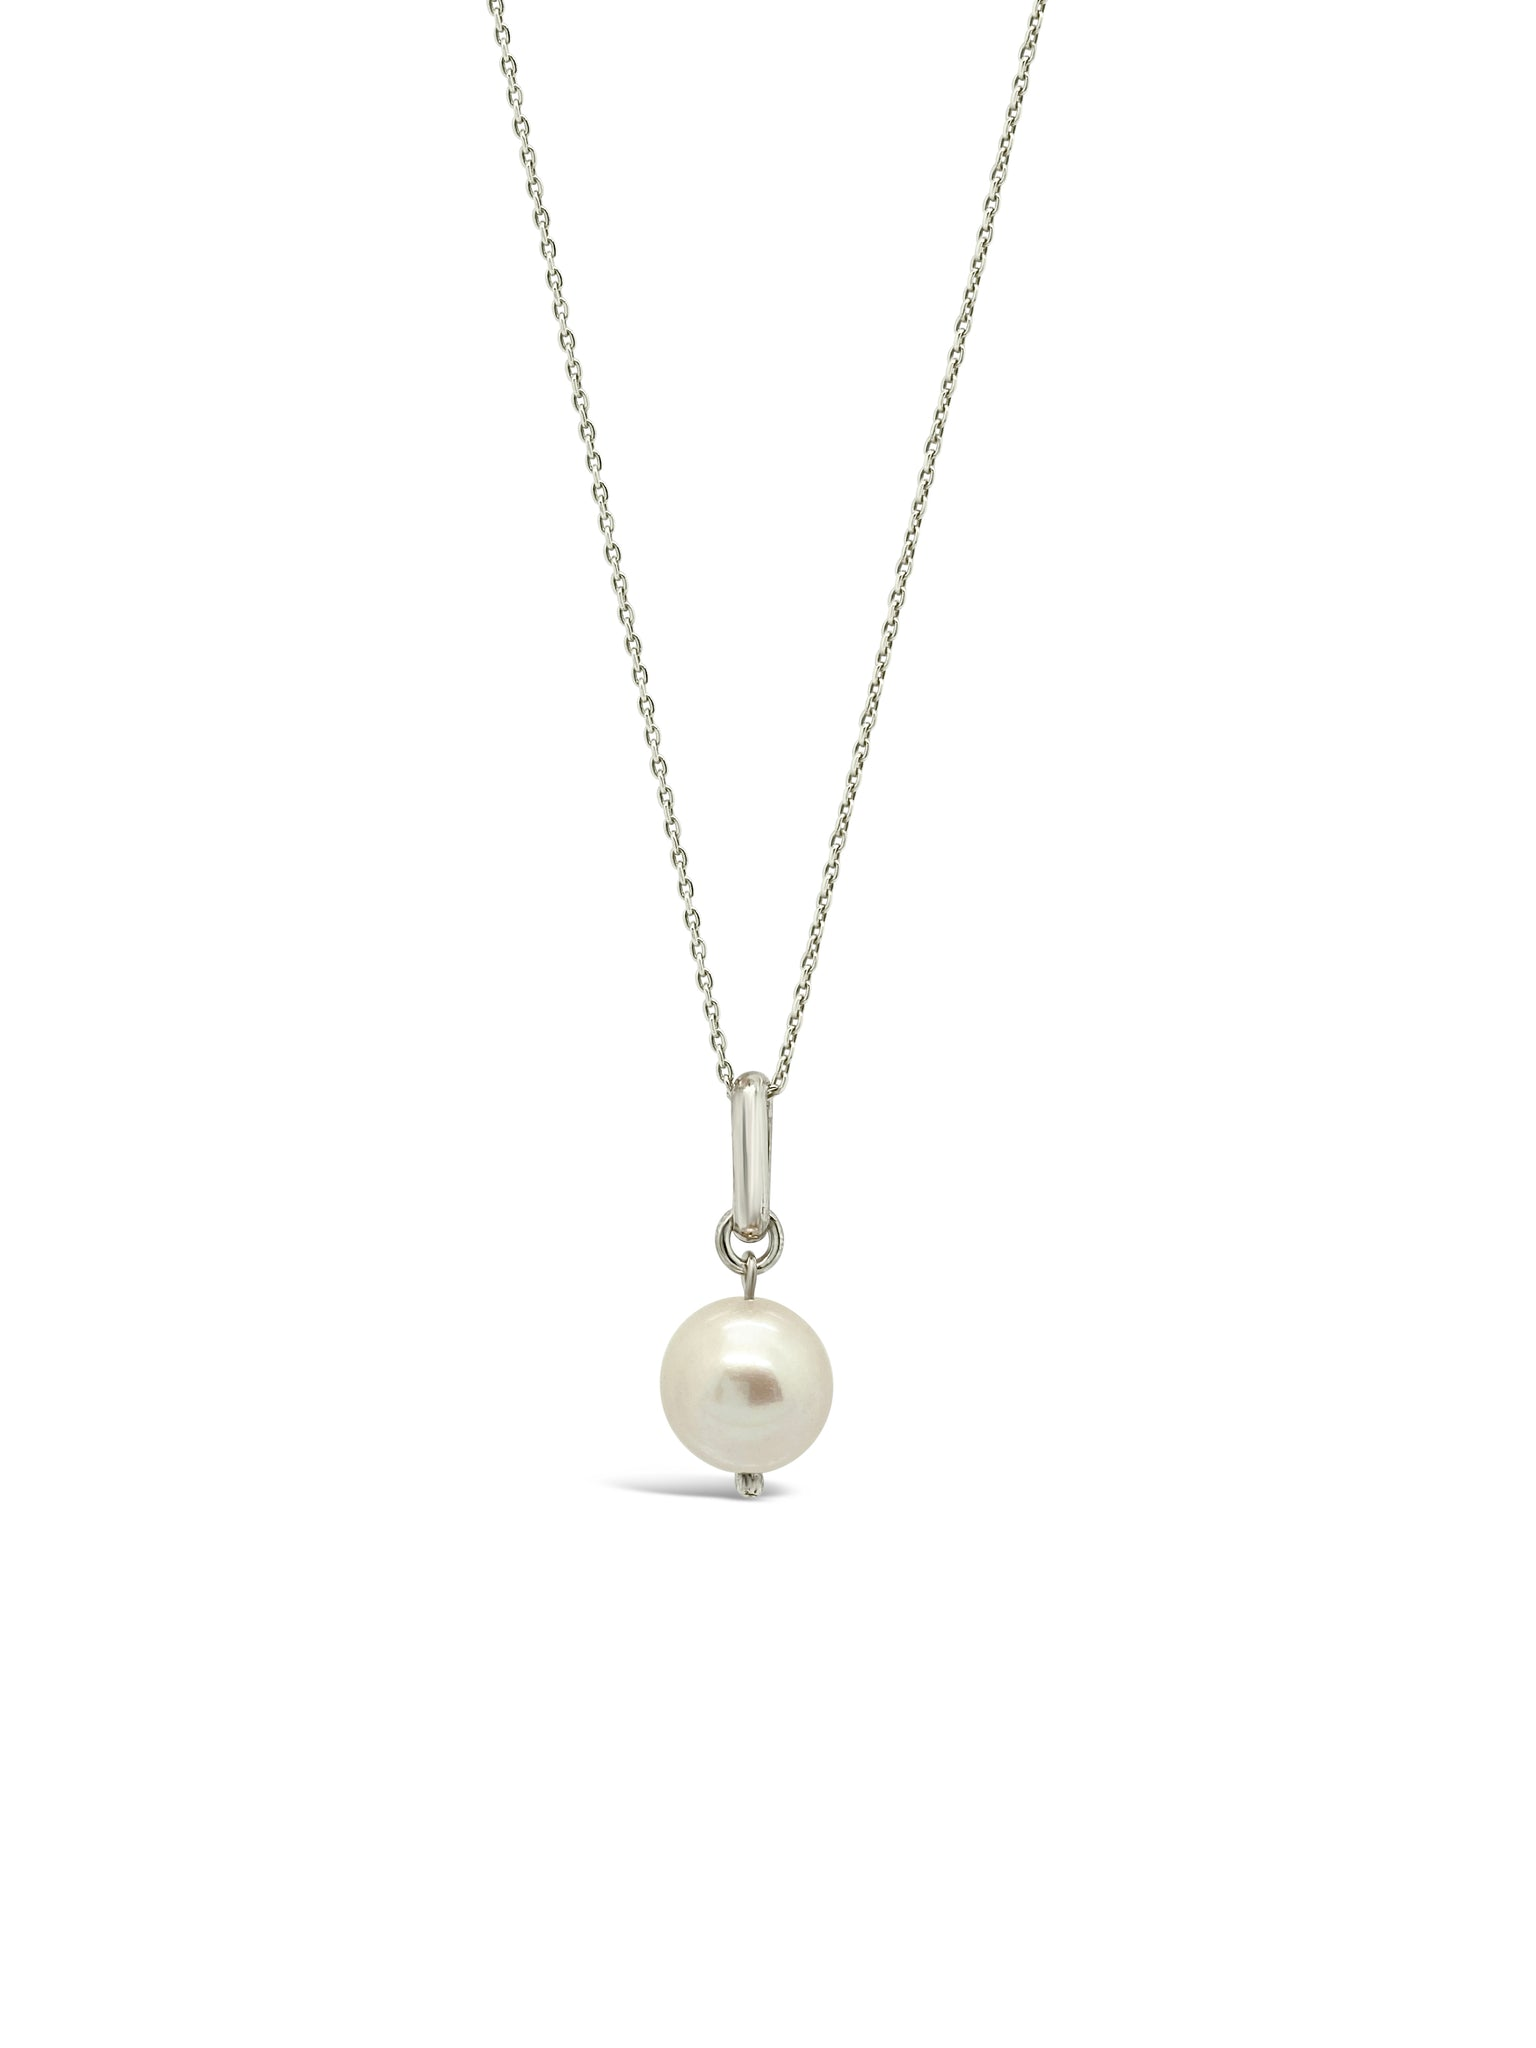 FEATURED PEARL NECKLACE